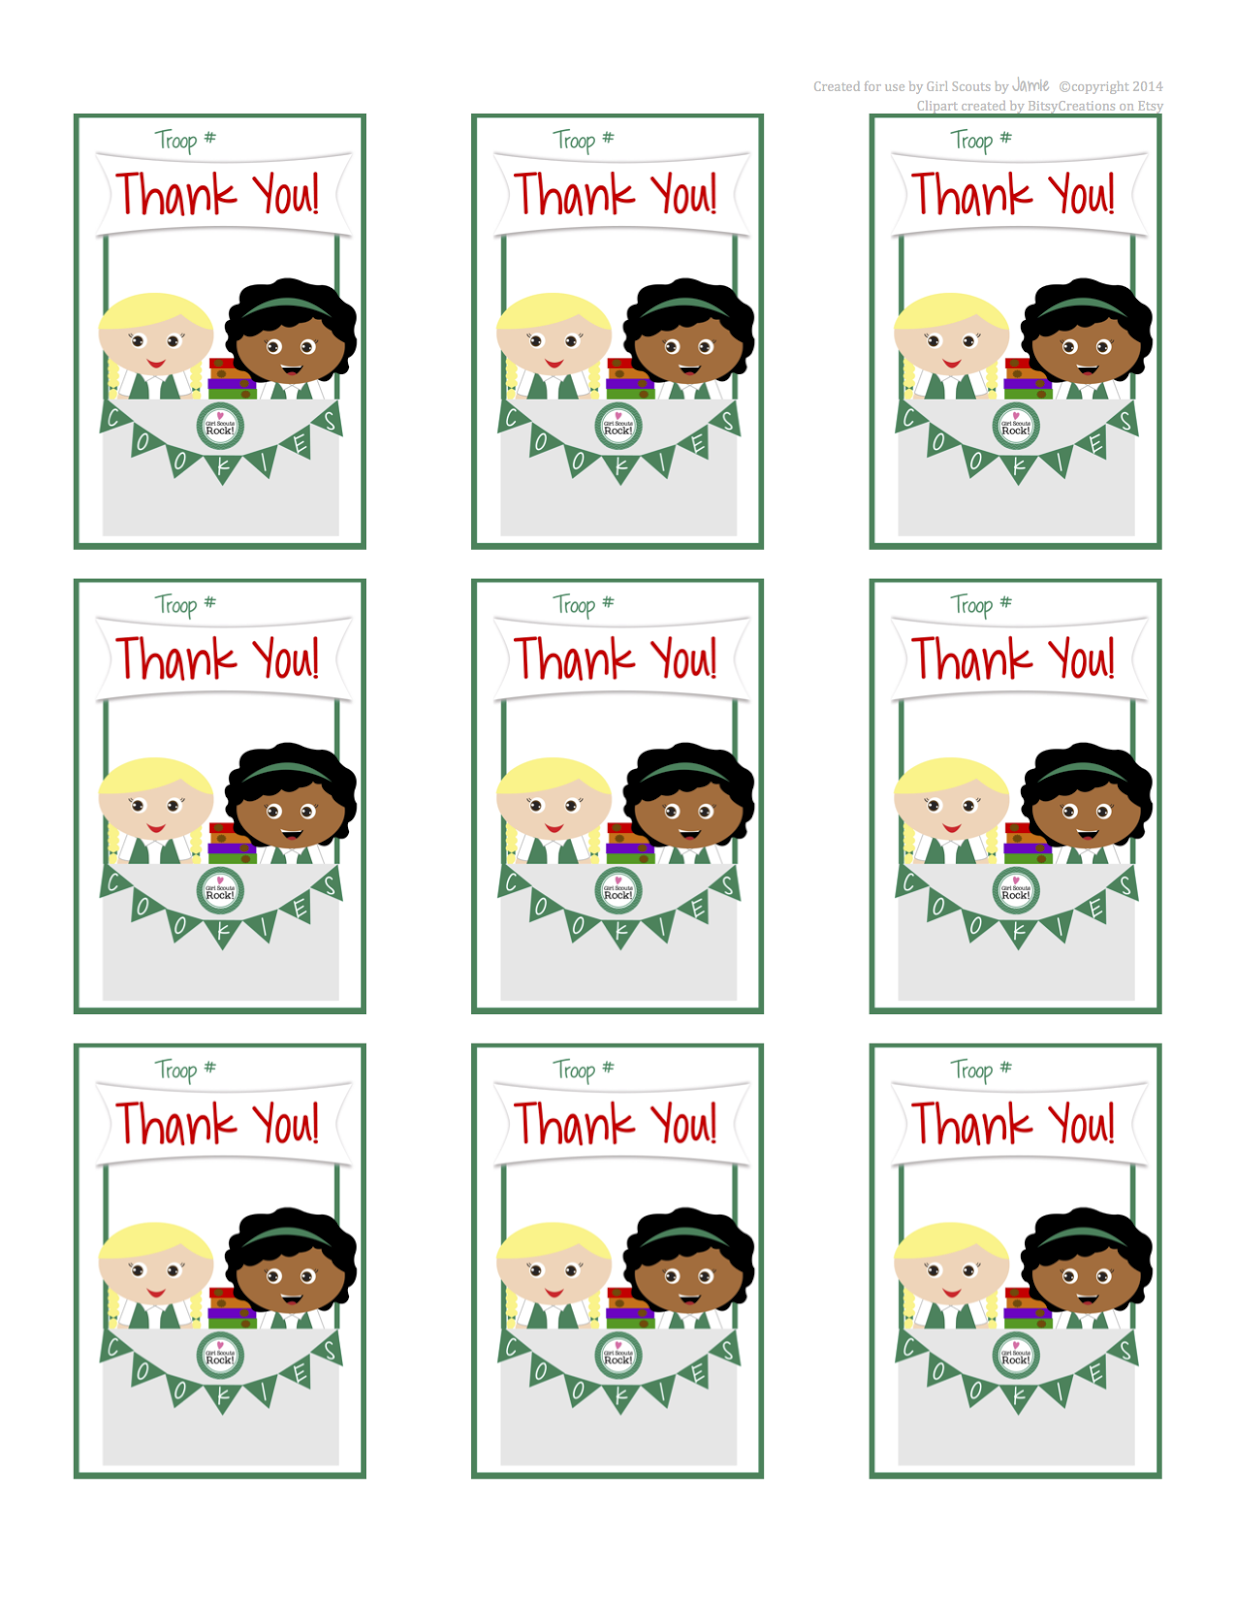 Girl Scout Junior Clipart Here Are Some Free Printable Thank You Cards